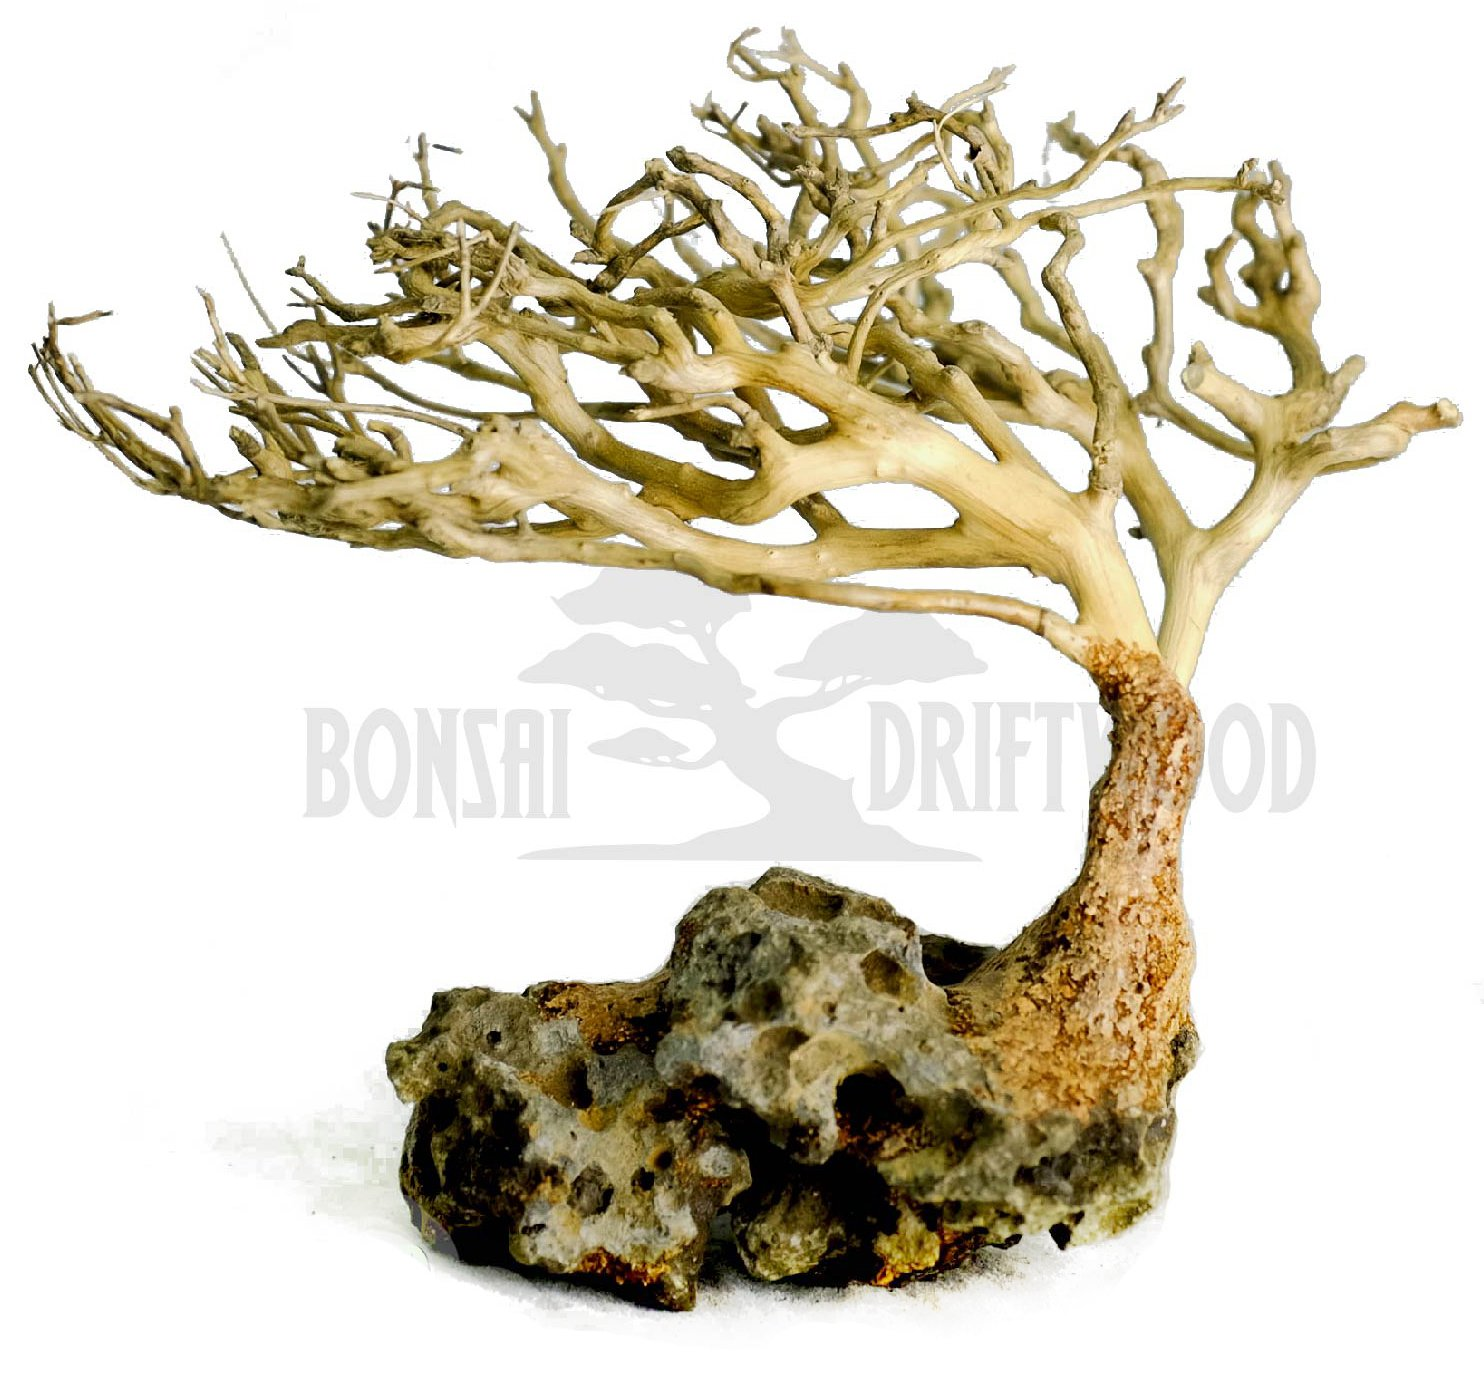 Bonsai Driftwood Aquarium Tree (5 Inch Height) Natural, Handcrafted Fish Tank Decoration | Helps Balance Water pH Levels, Stabilizes Environments | Easy to Install